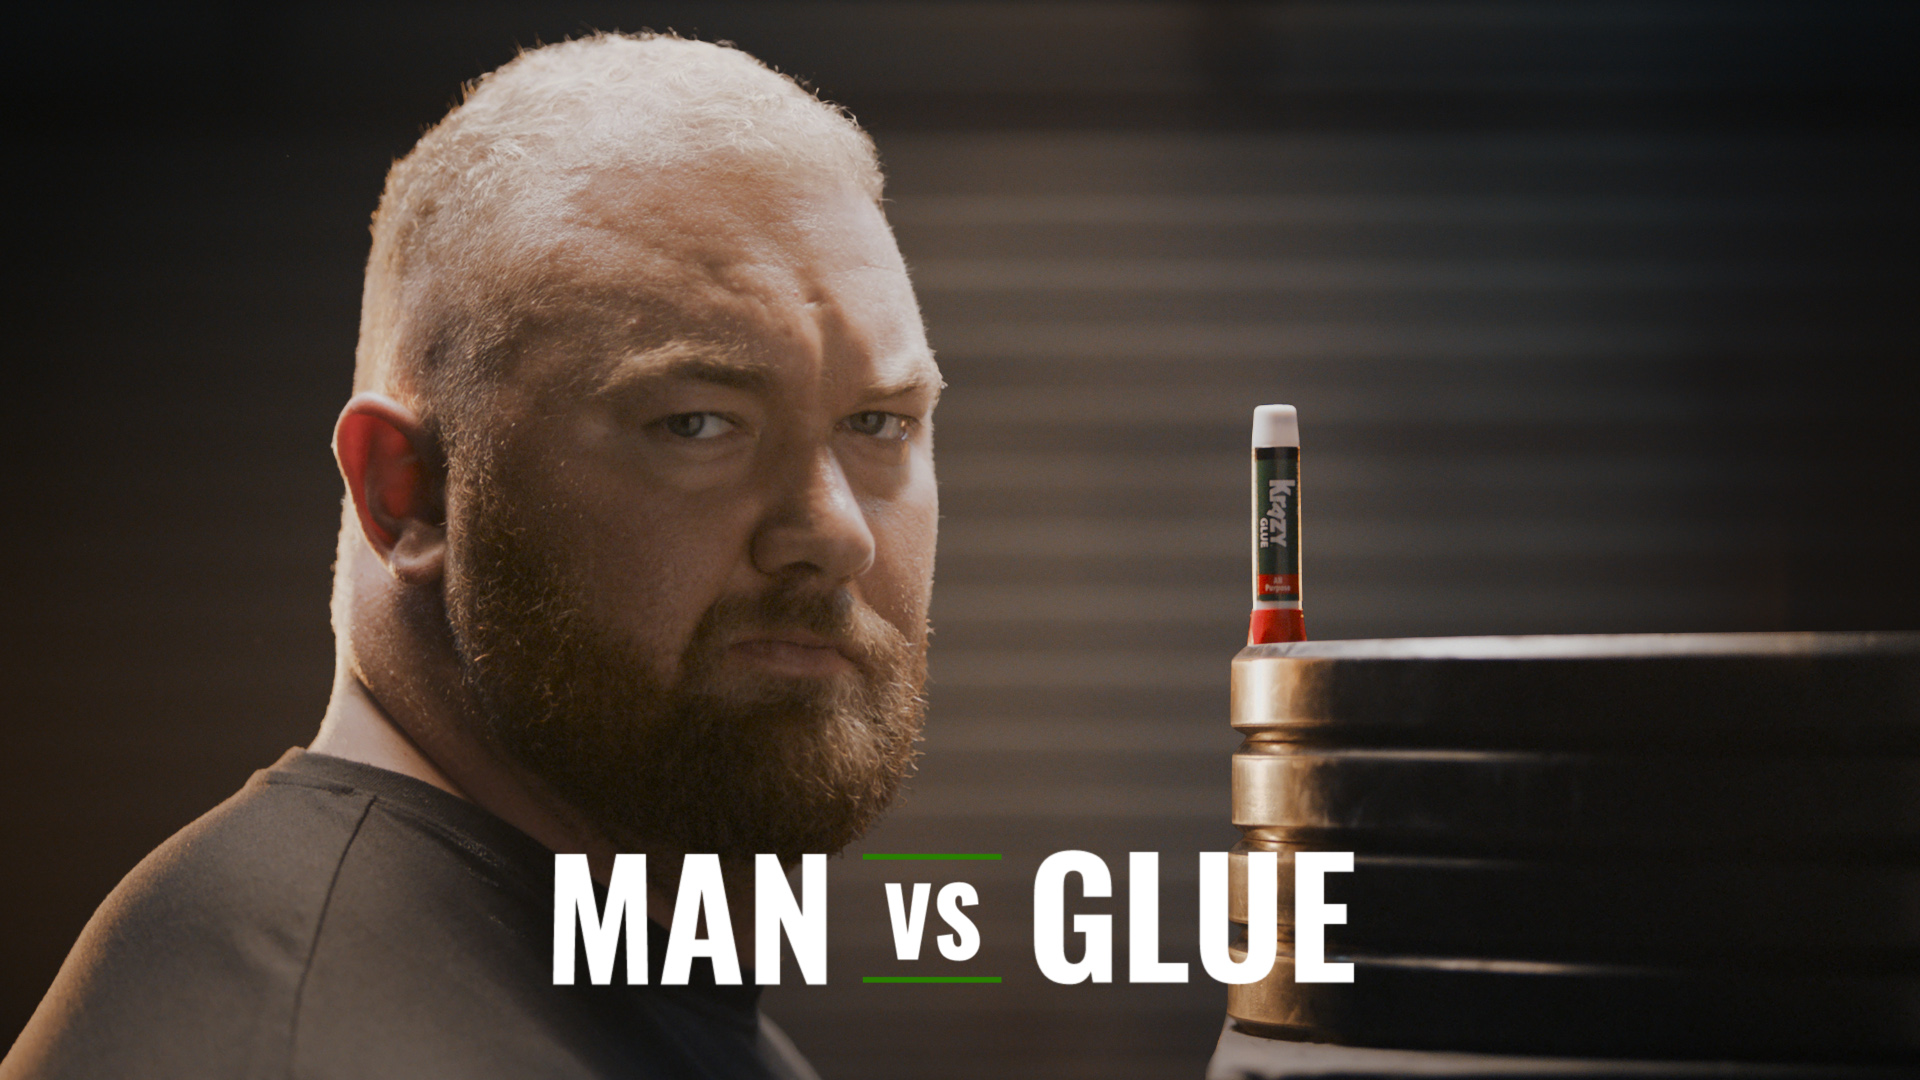 Krazy Glue® has challenged Hafthor Bjornsson, the World's Strongest Man, to put the product's strength and durability to the test in a krazy weight lifting challenge that will take place live on December 5, 2018, in New York City.